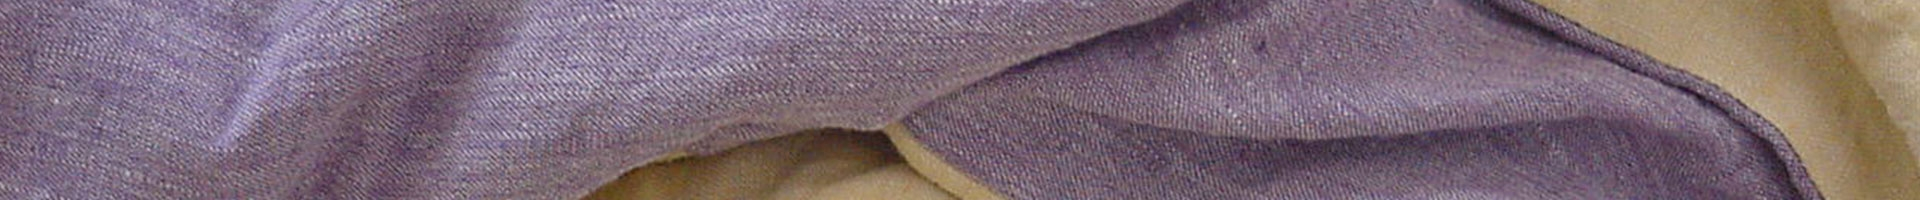 100% linen duvet cover in violet double faced in yellow linen